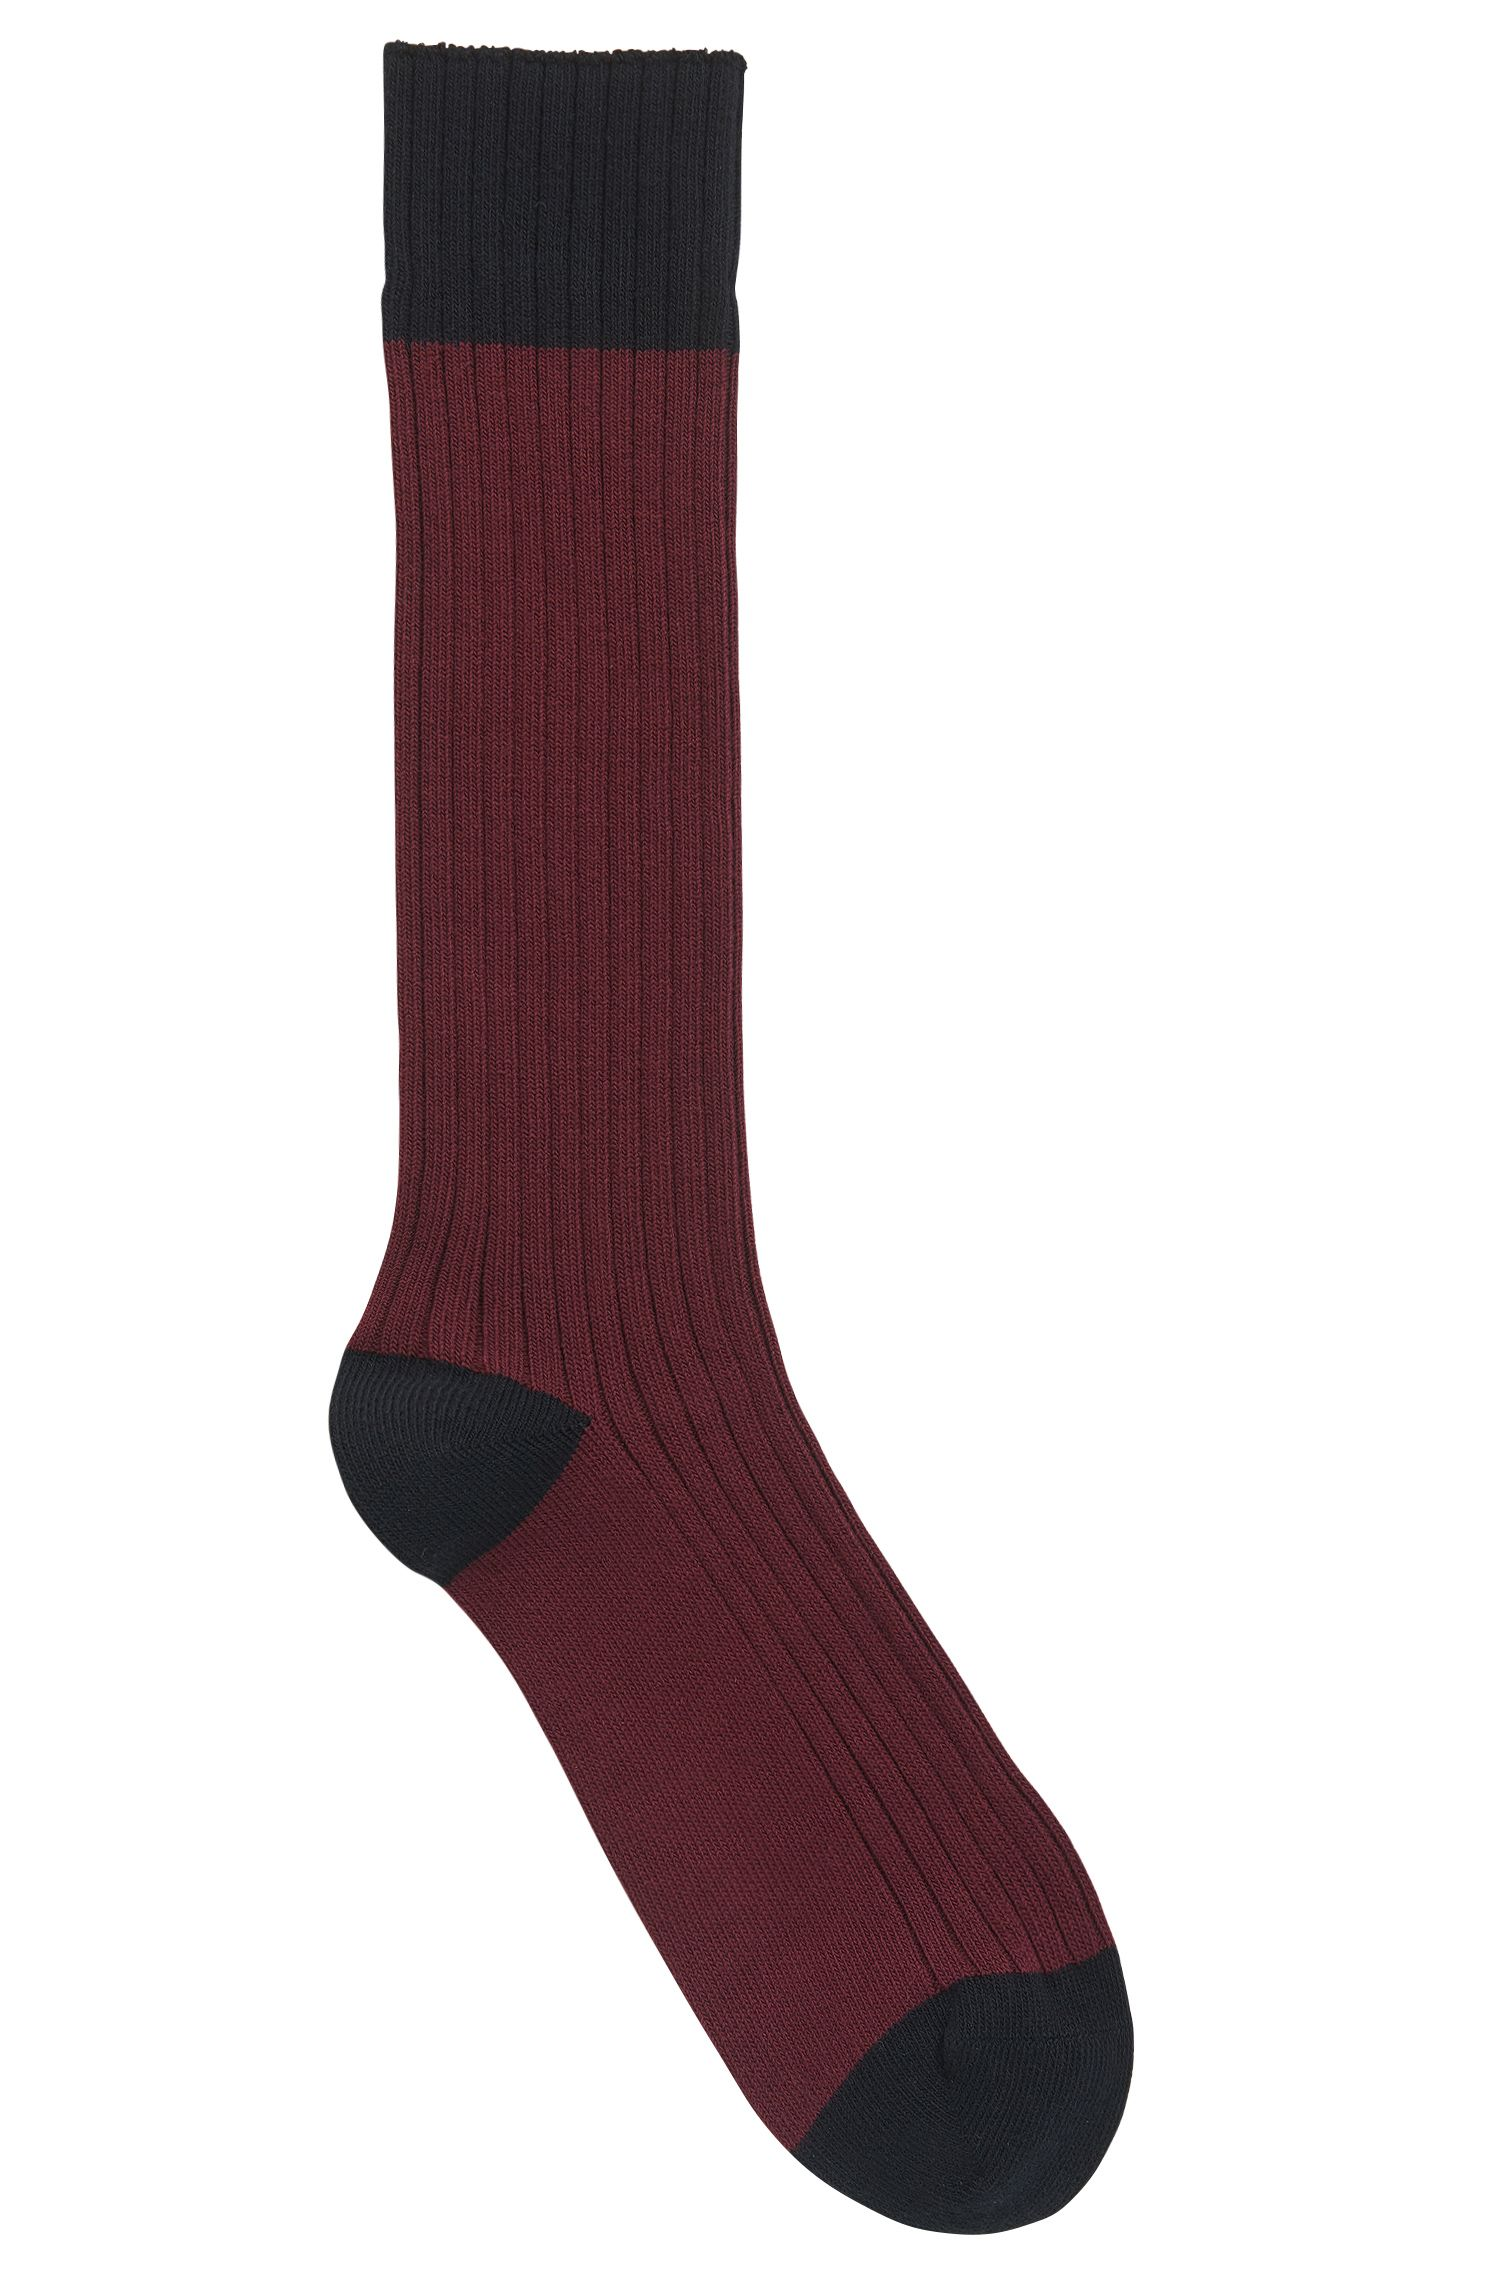 Lightweight boot socks in a combed-cotton blend